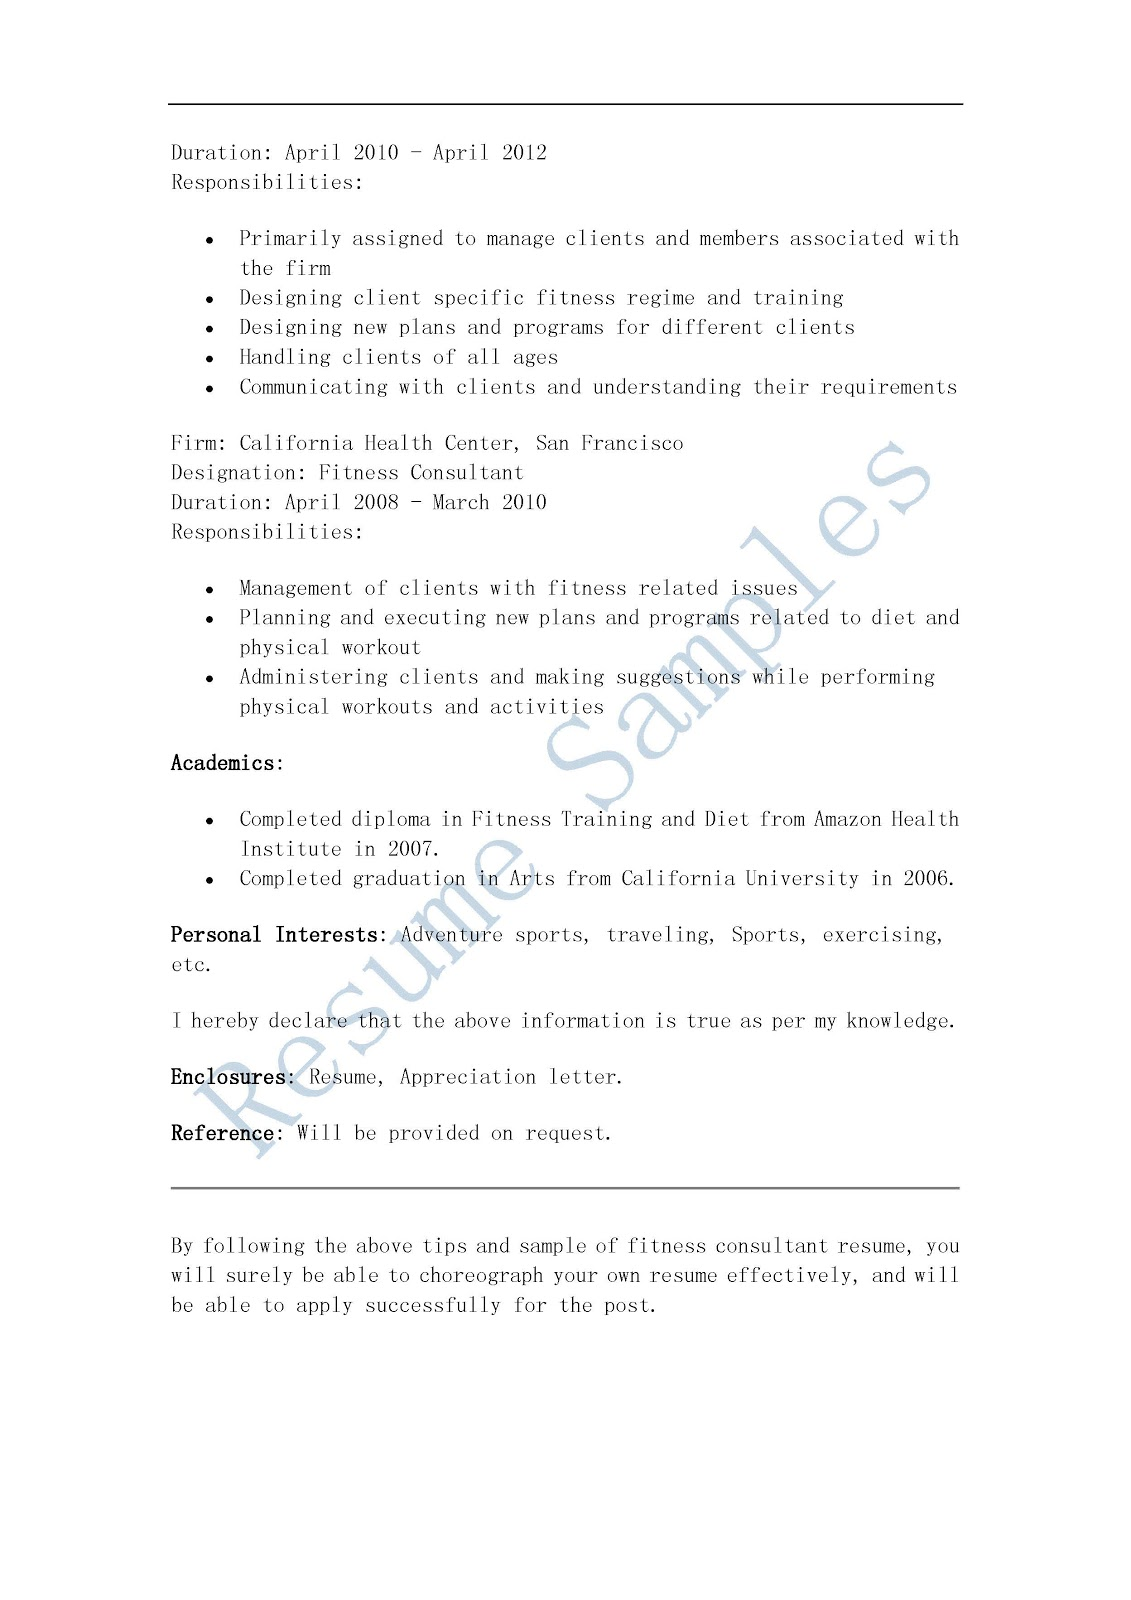 automotive service advisor resume sample photos automotive service advisor resume sample - Service Advisor Resume